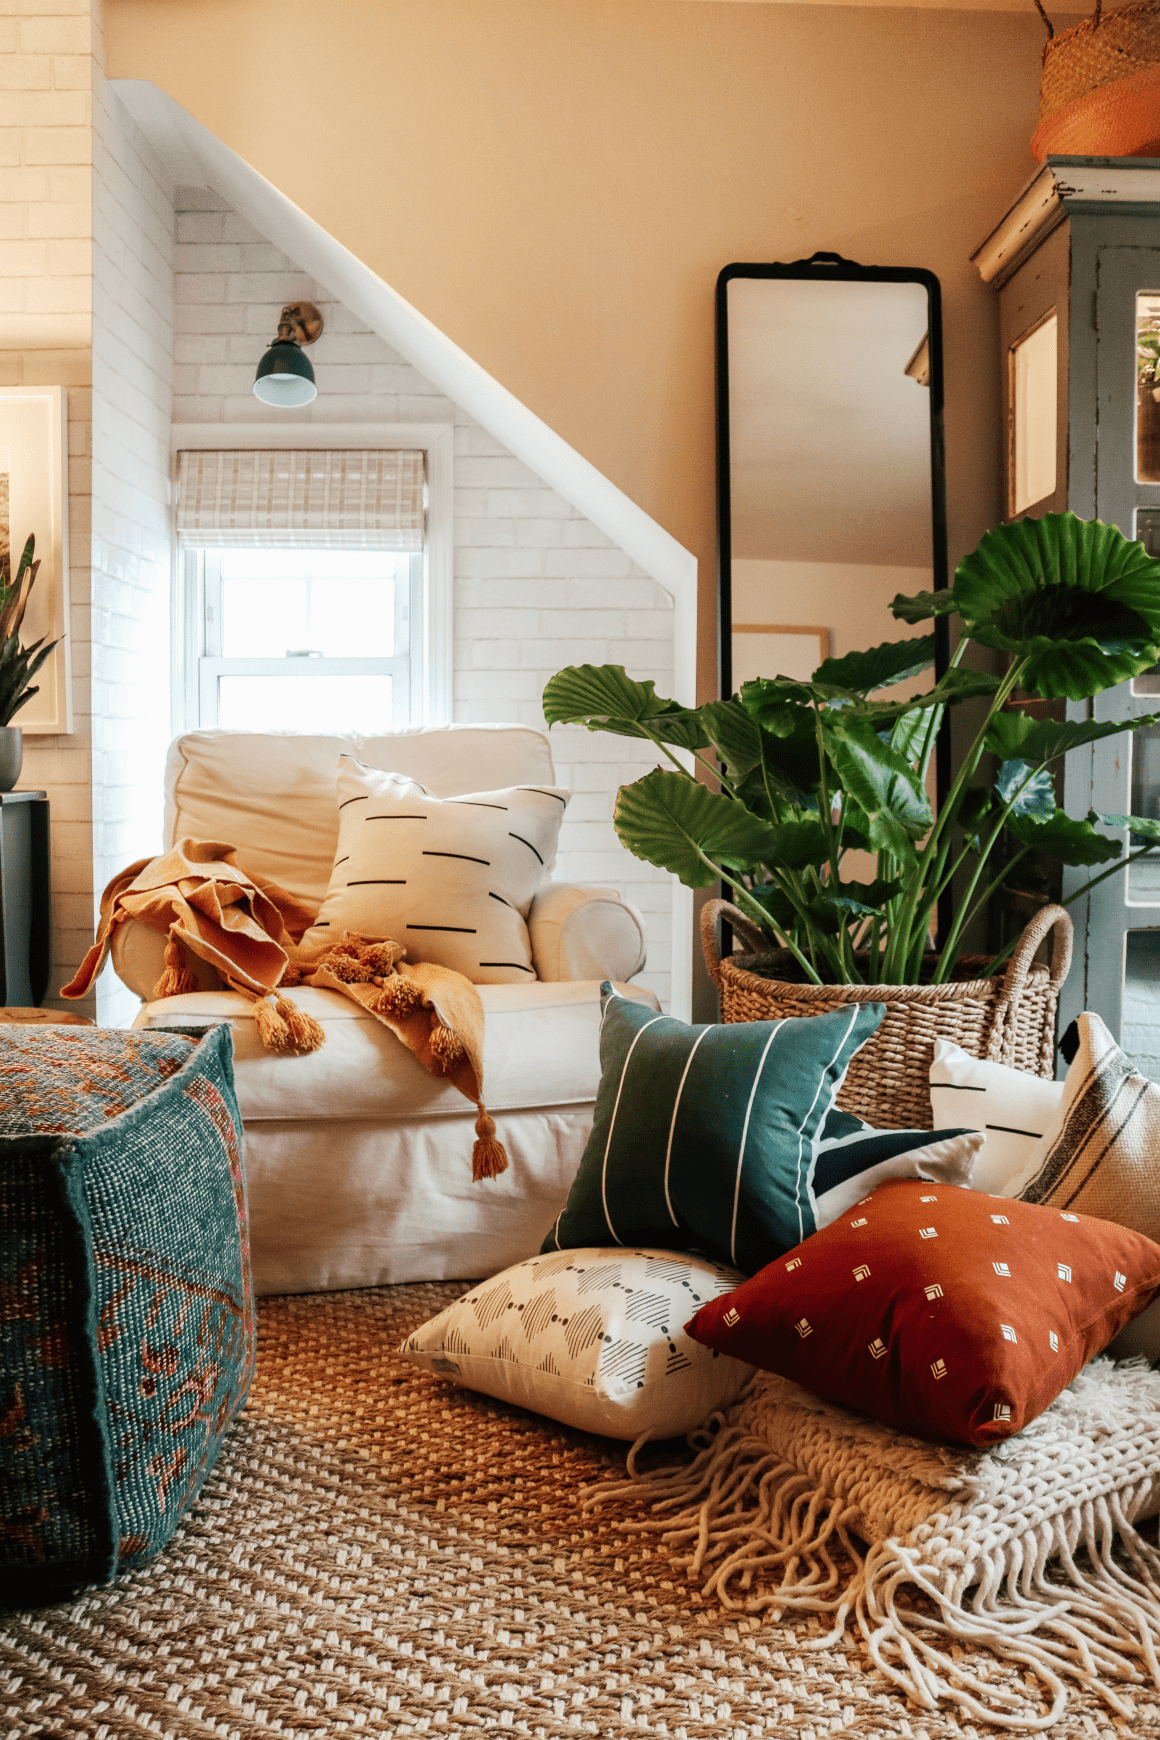 10 Ways Your Home Could Look Cheap Meditation Room Matching